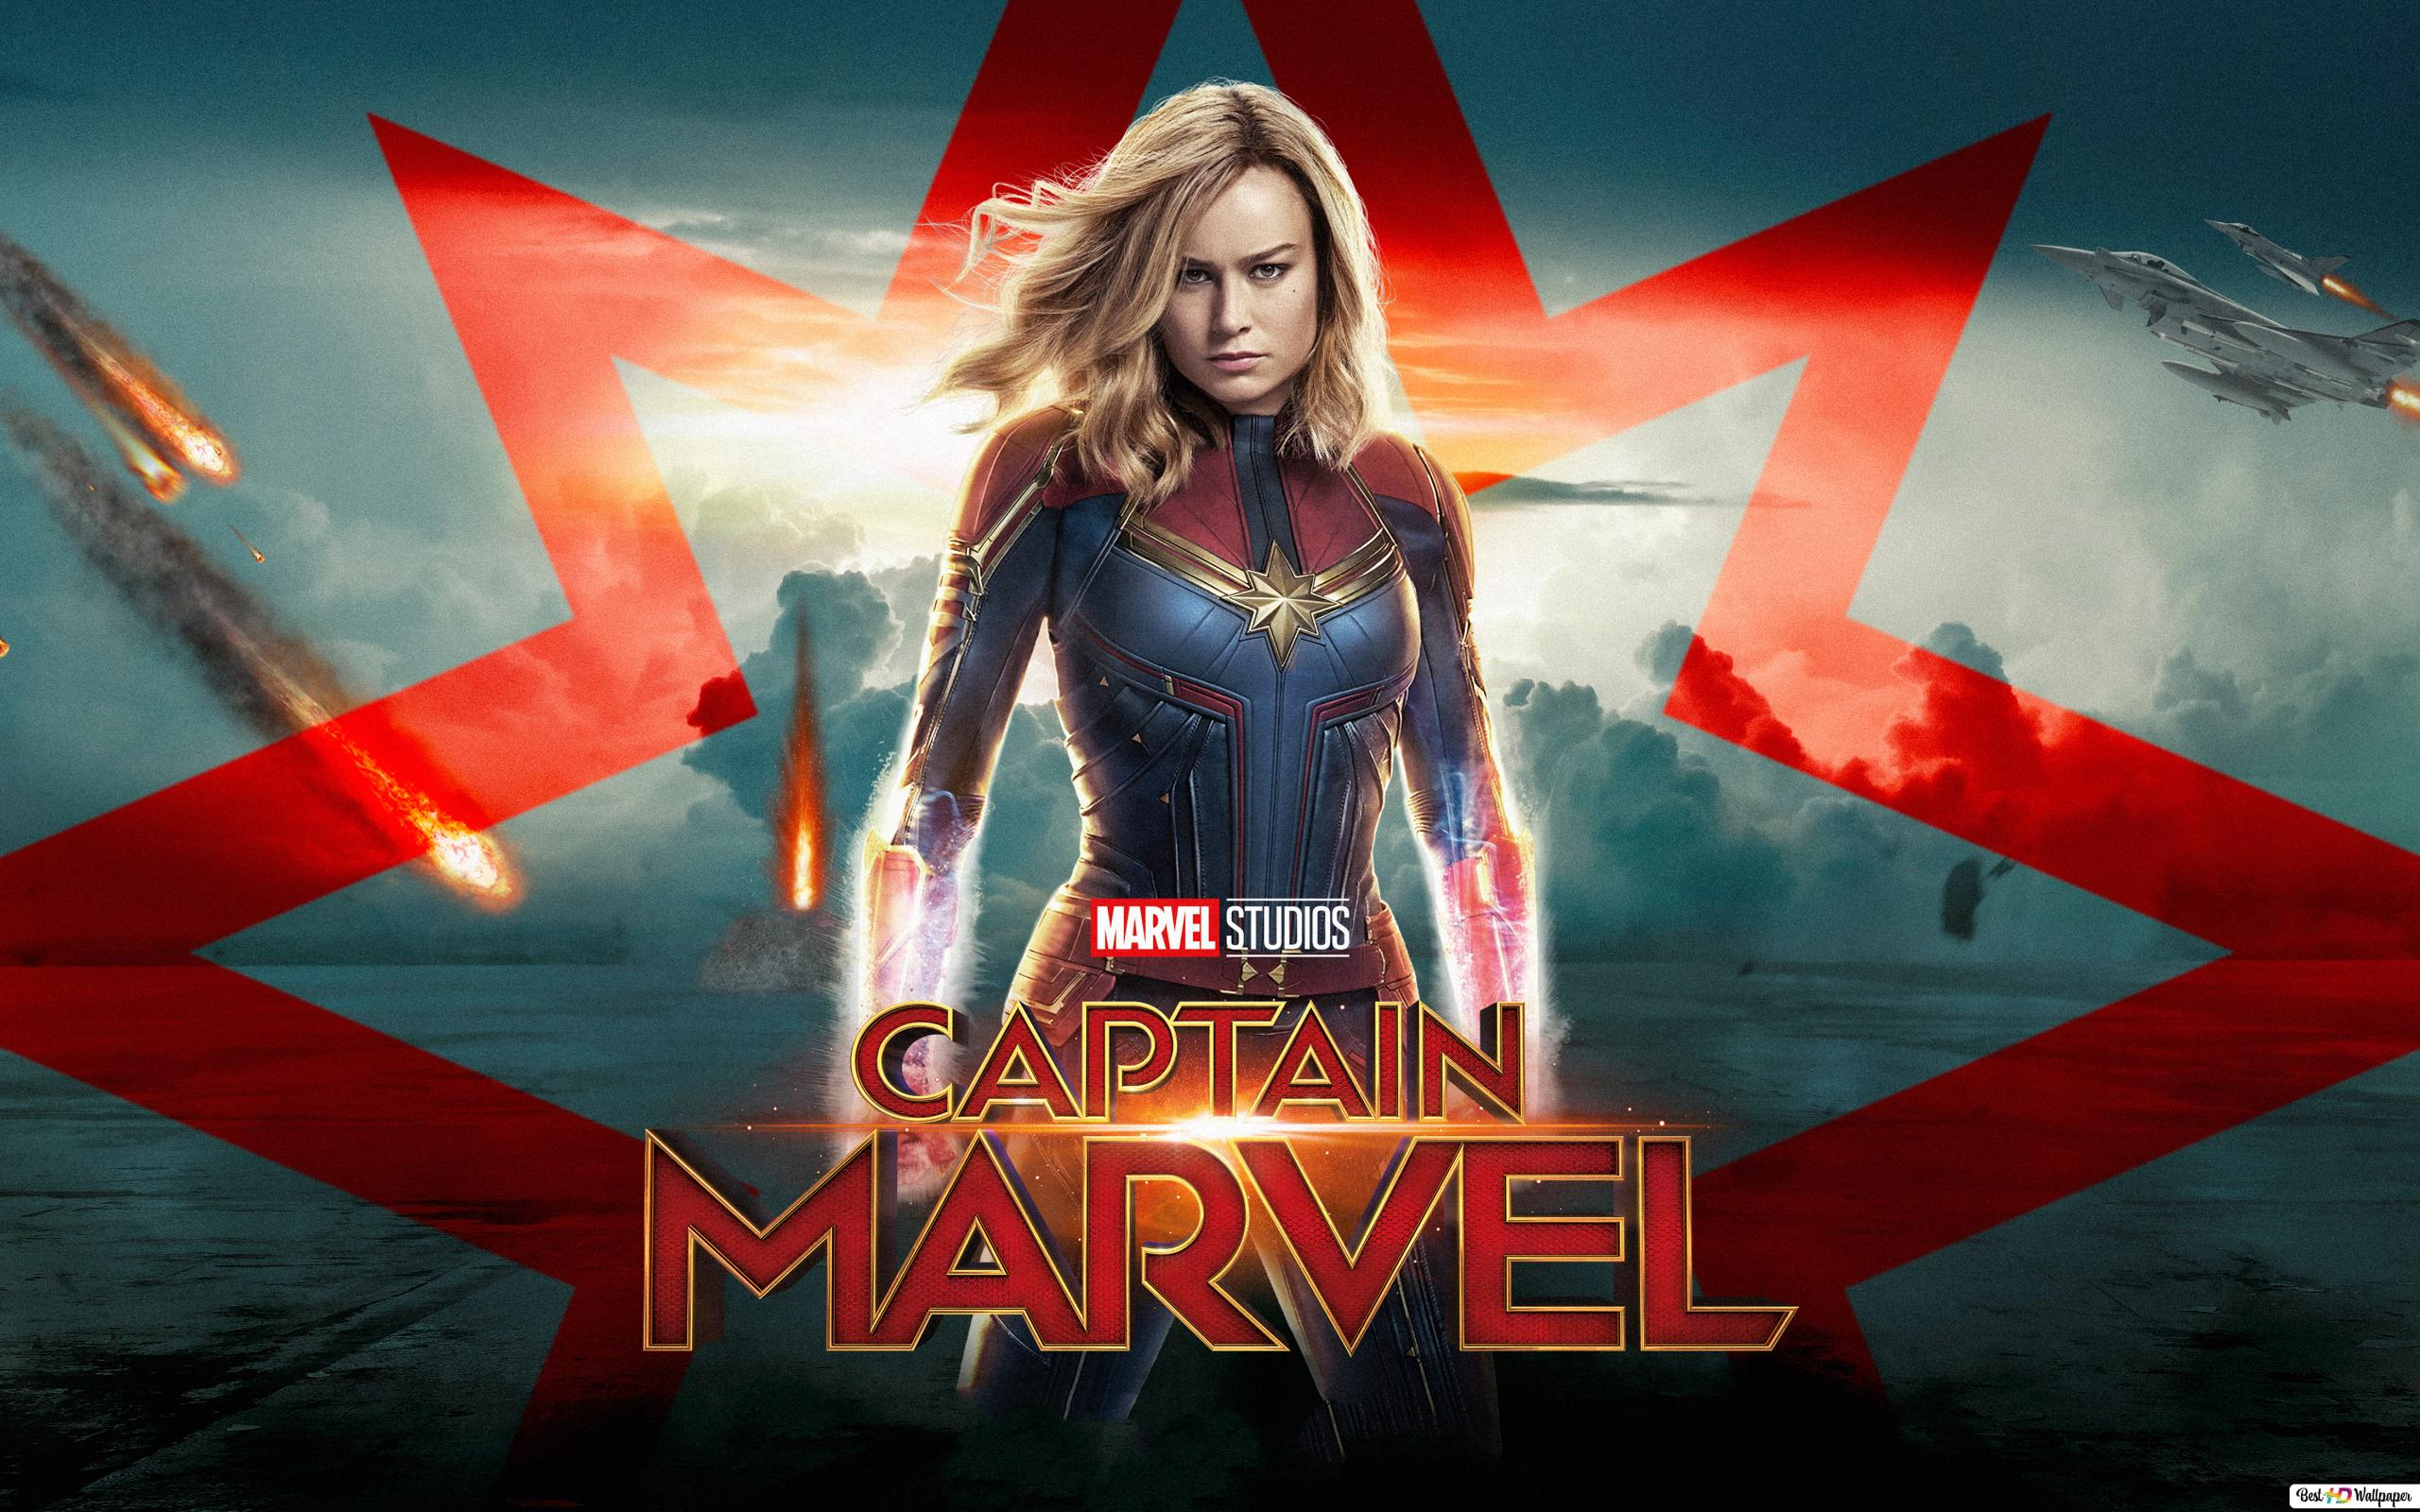 Marvel Studios Captain Marvel Hd Wallpaper Download